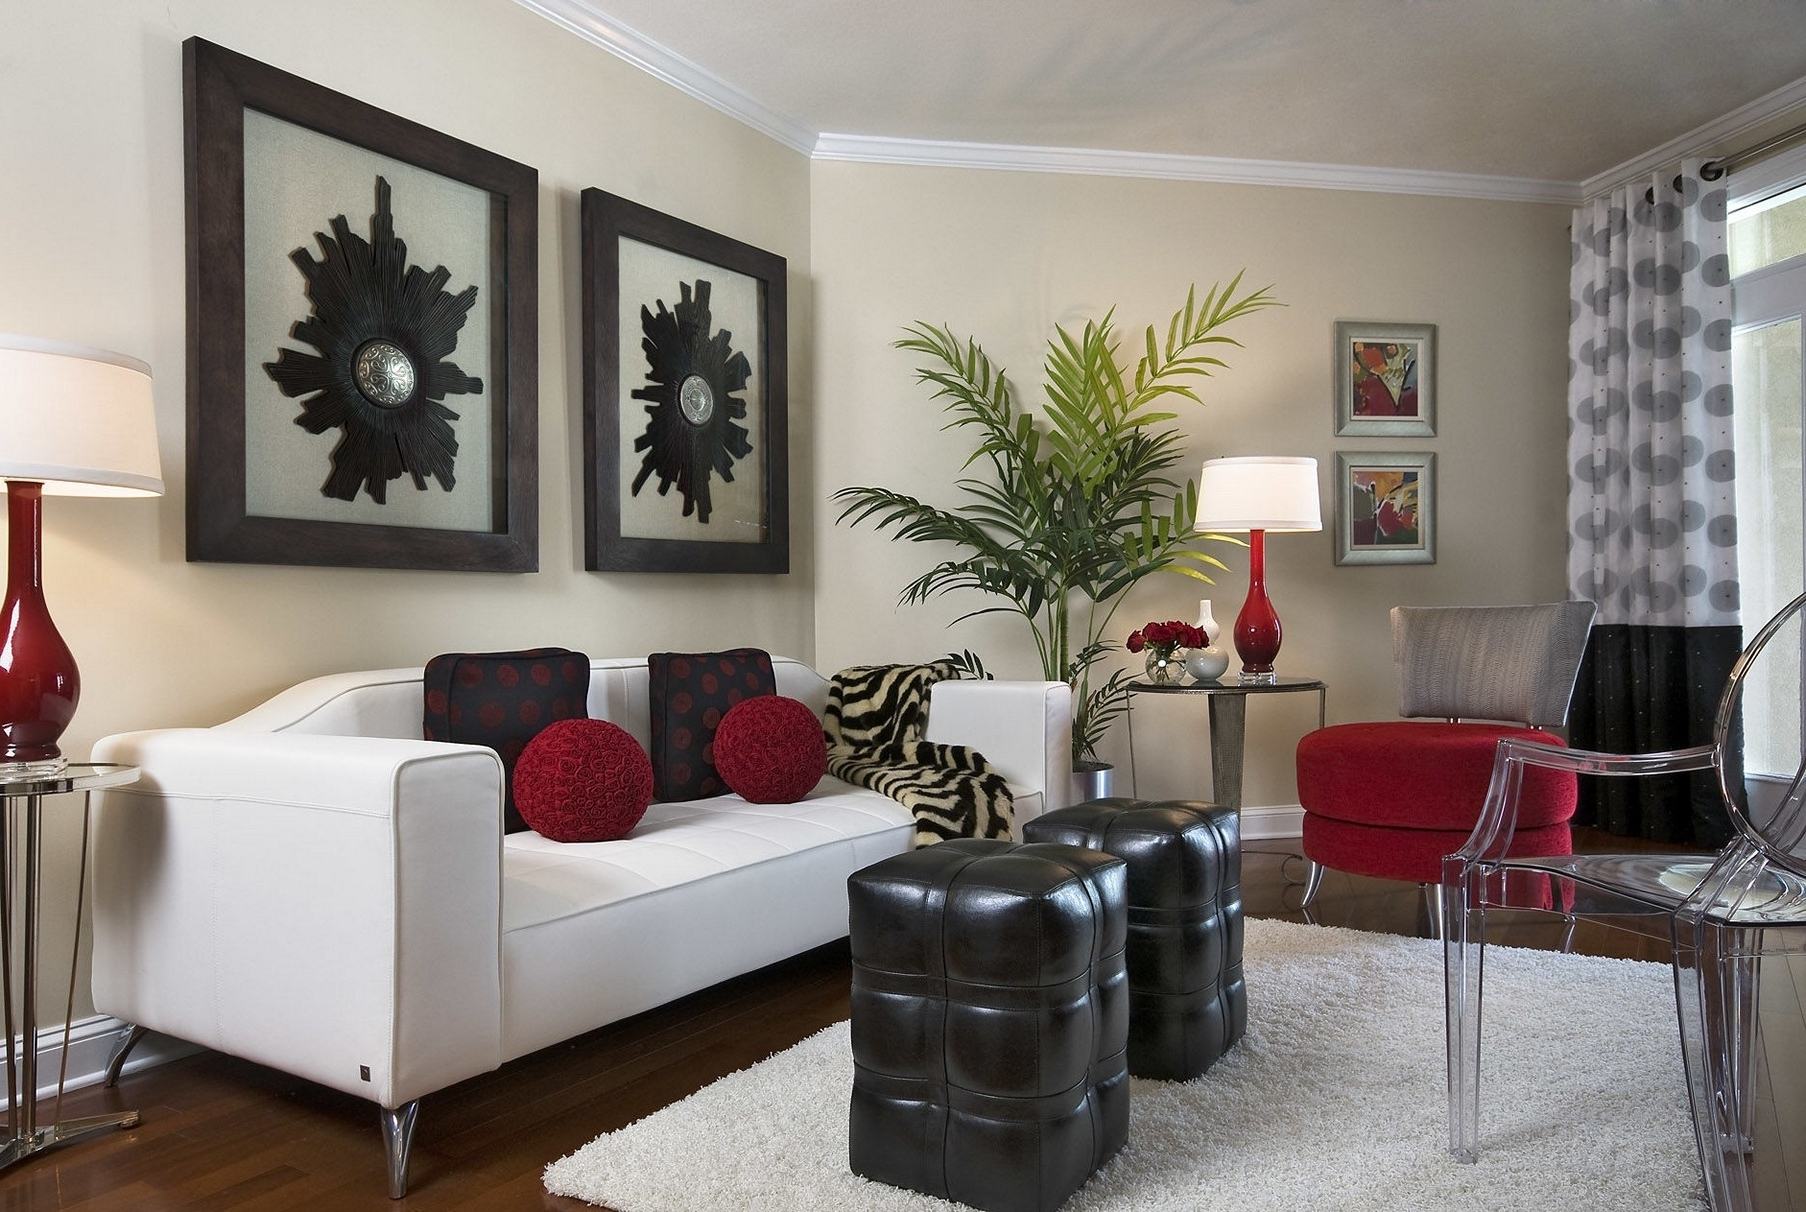 Wall Art Ideas For Living Room Within 2018 Awesome Living Room Wall Art Ideas Top Living Room Remodel Ideas (View 15 of 15)